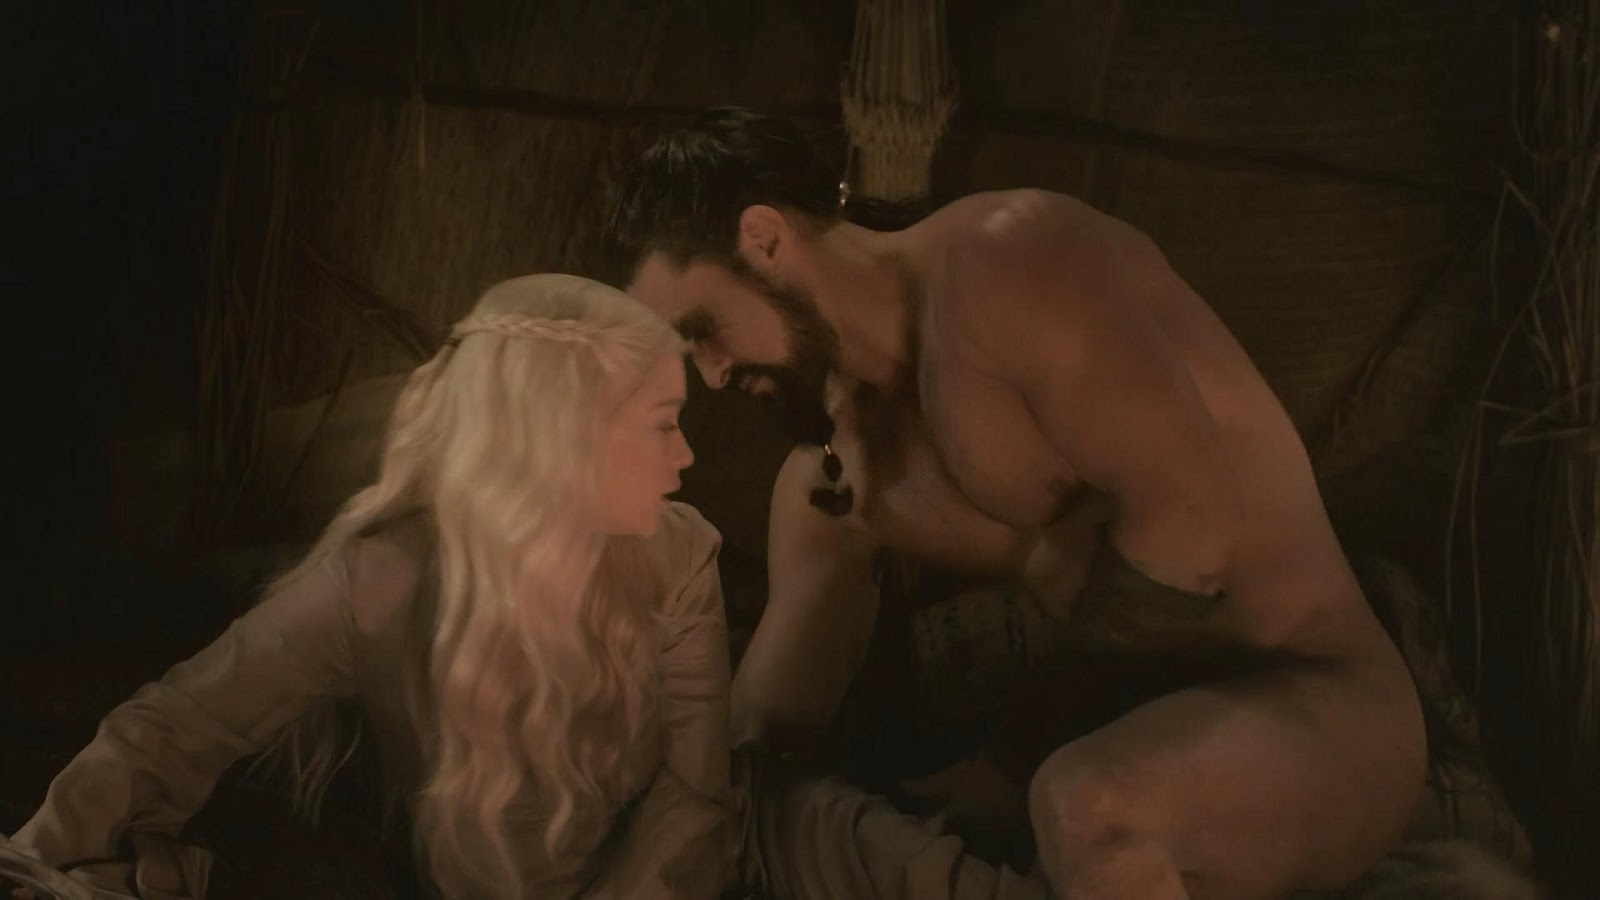 Jason momoa game of thrones nude suggest